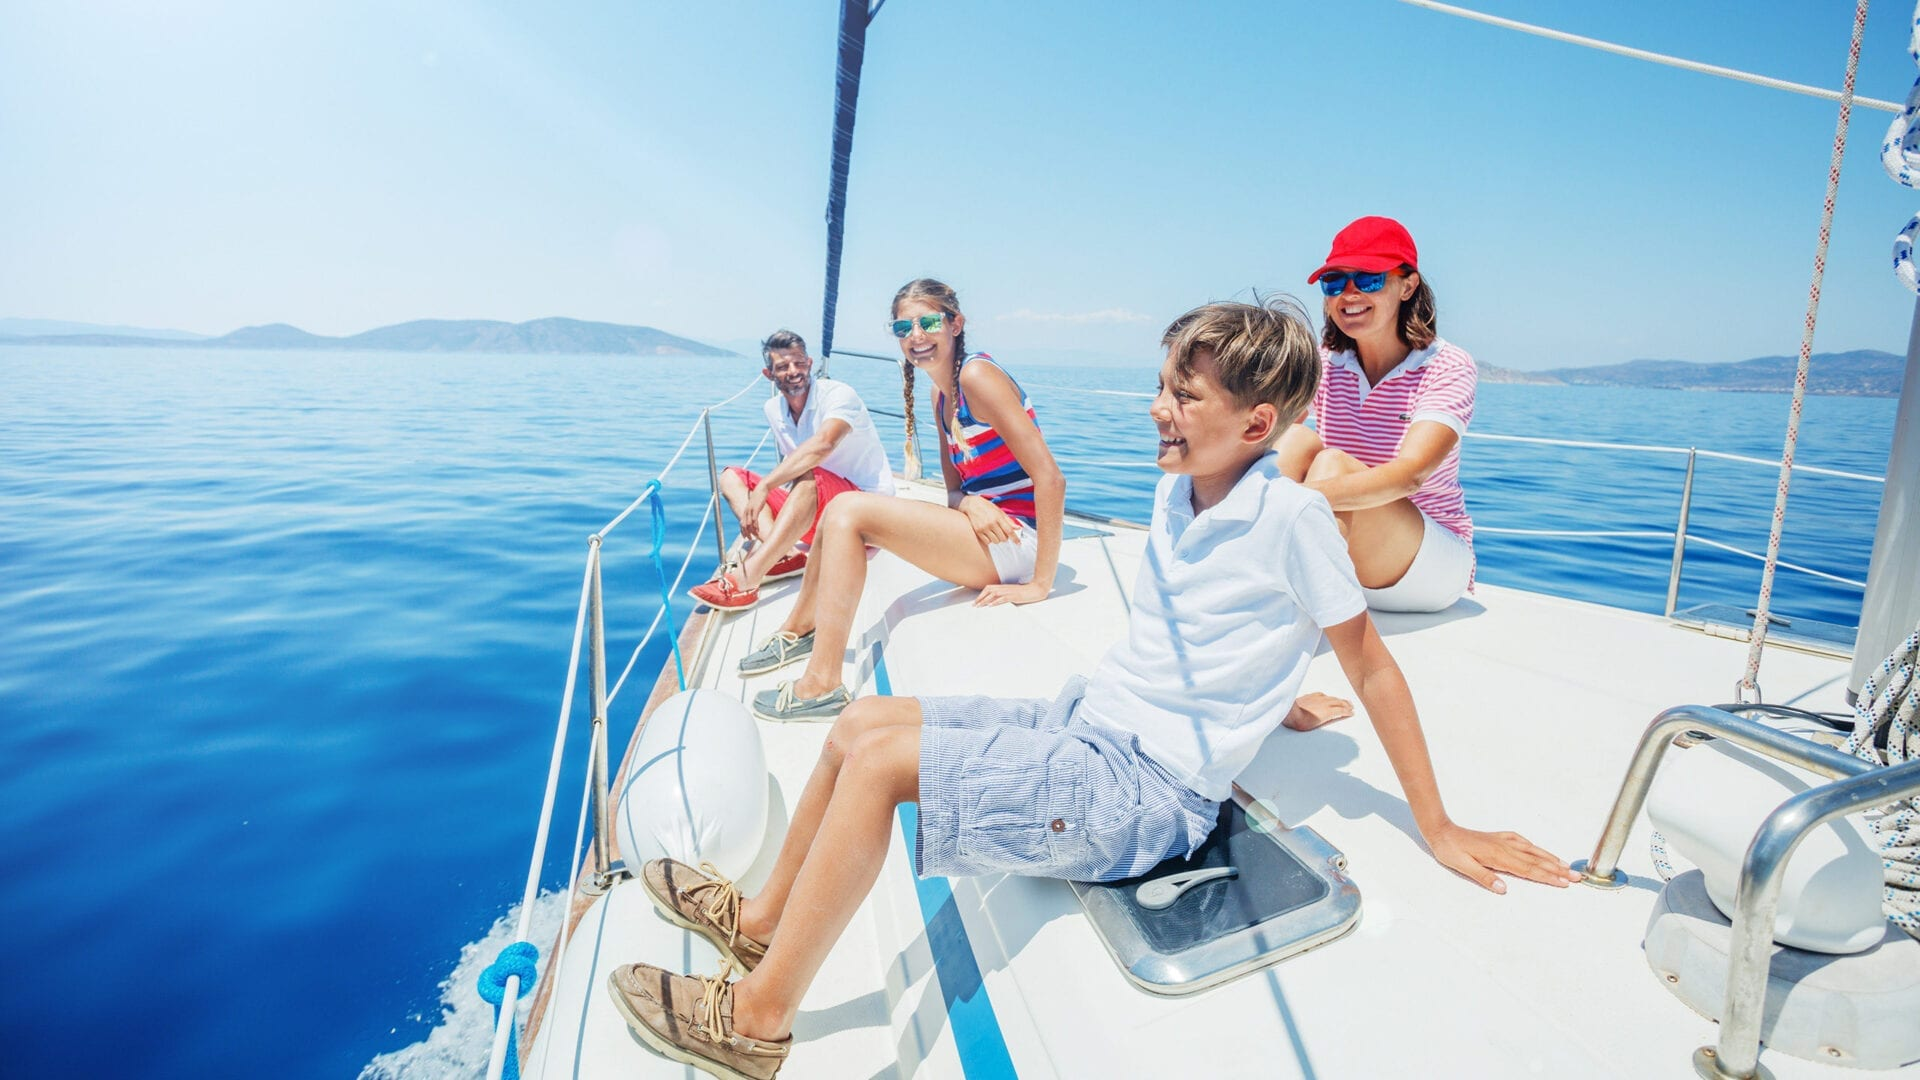 Smiling family on a sailboat